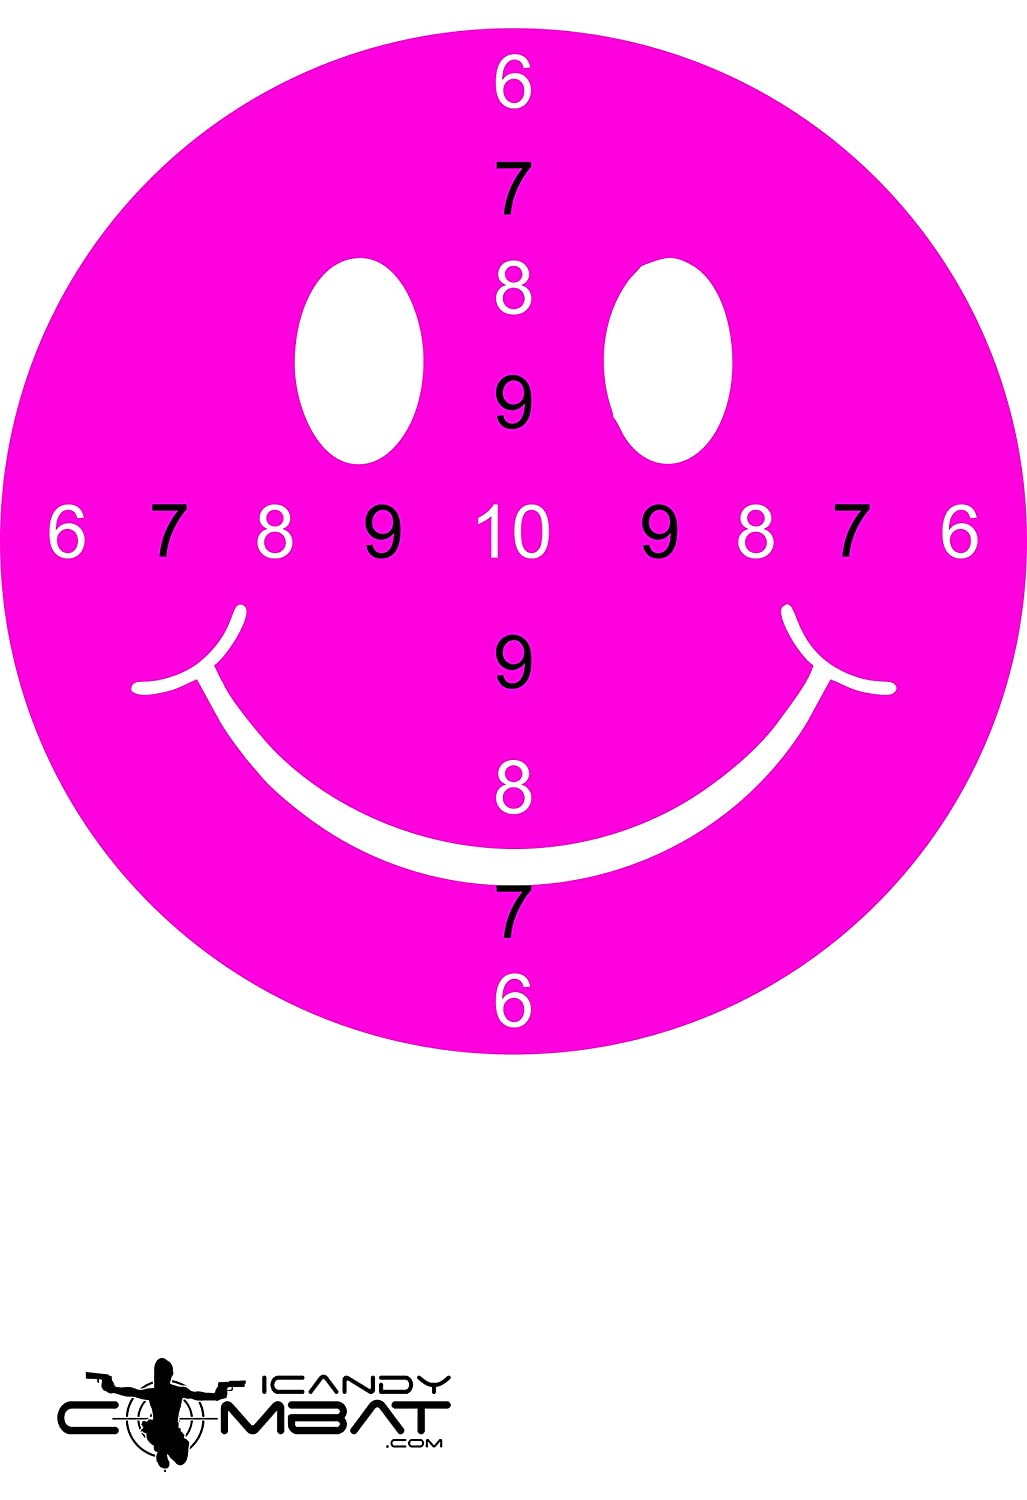 Amazon icandy combat heart hot pink bullseye paper target icandy combat smiley face hot pink shooting practice targets unique target for girls thecheapjerseys Images